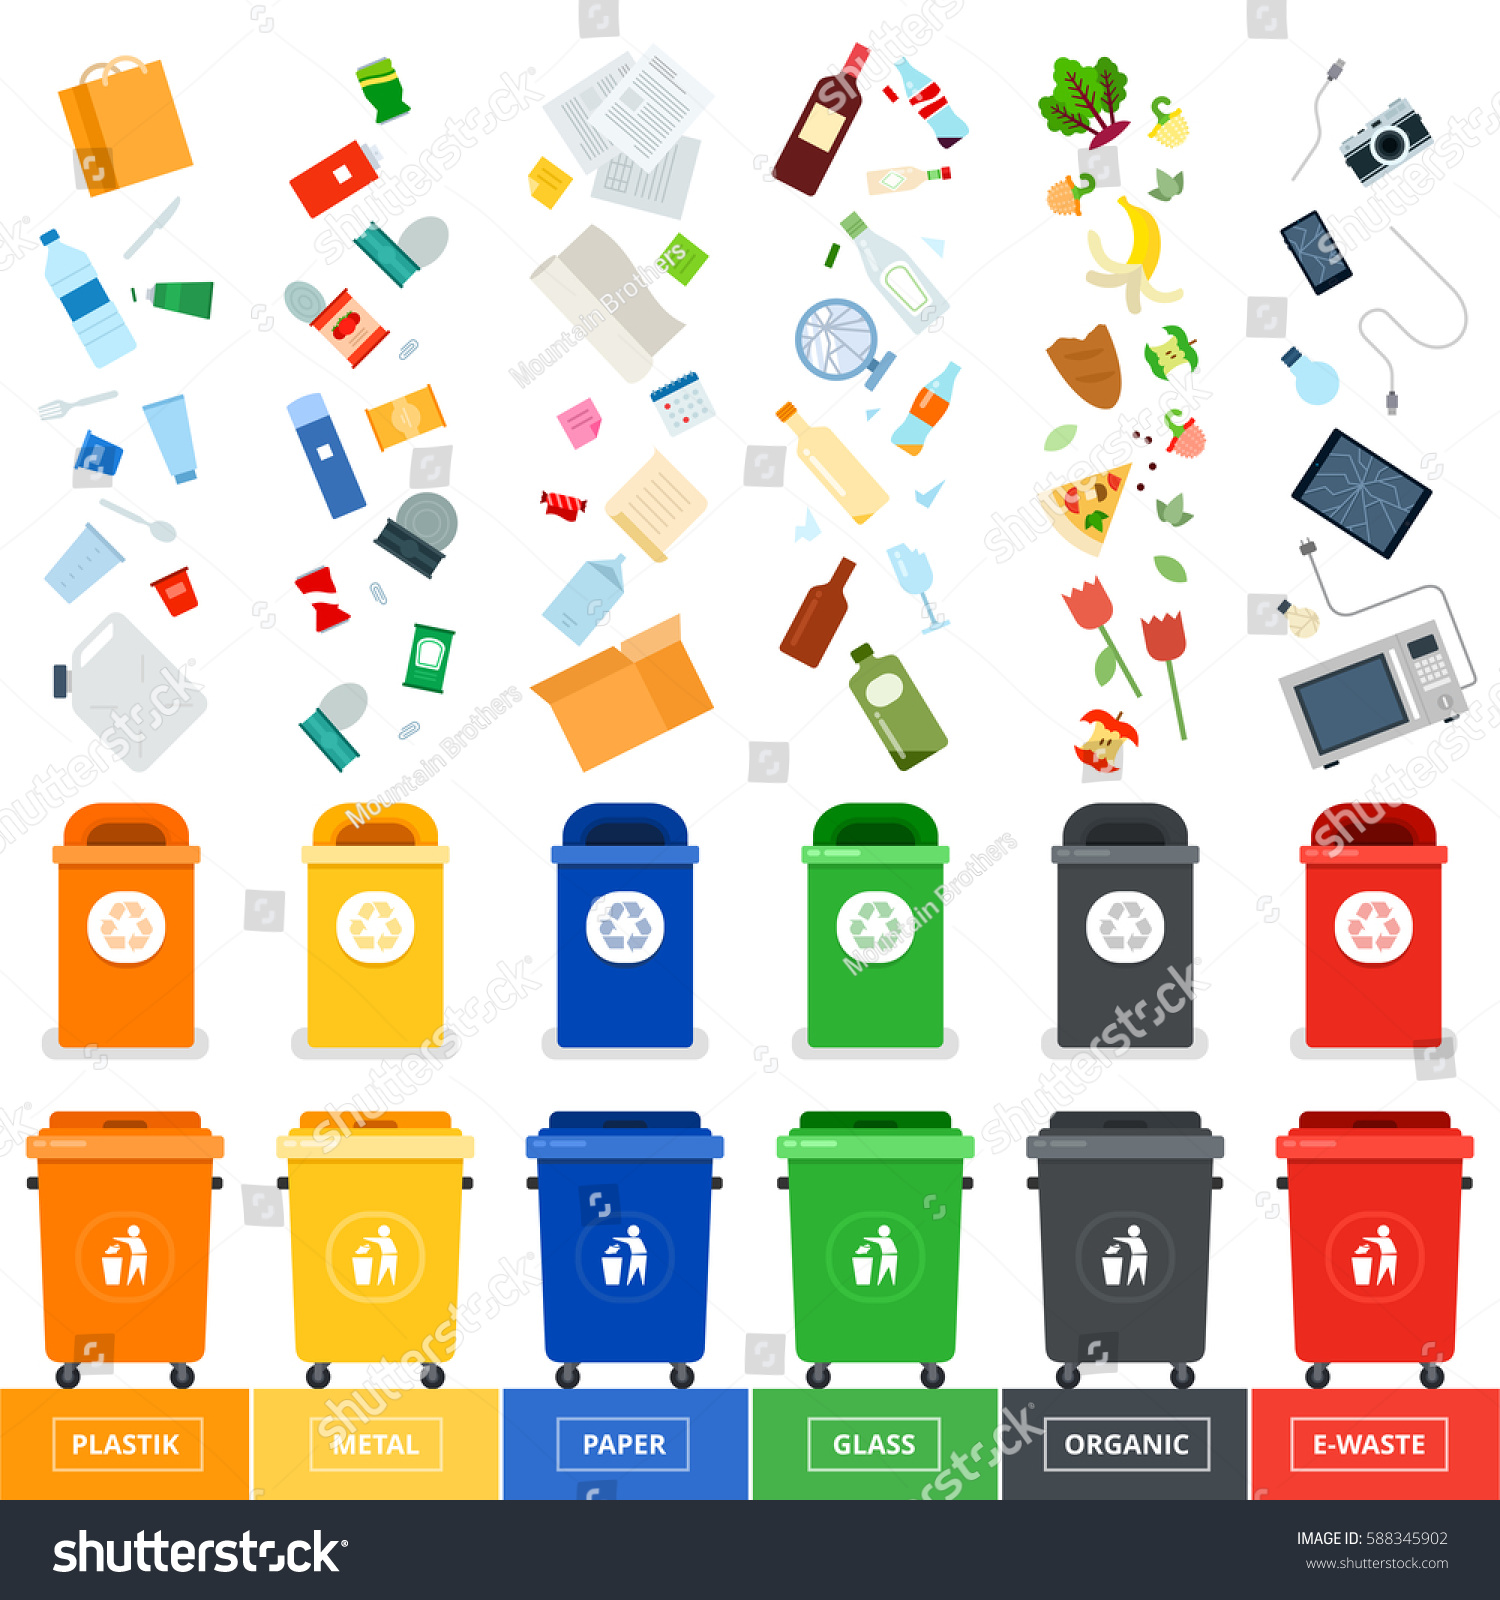 Garbage Cans Flat Illustrations Many Garbage Stock